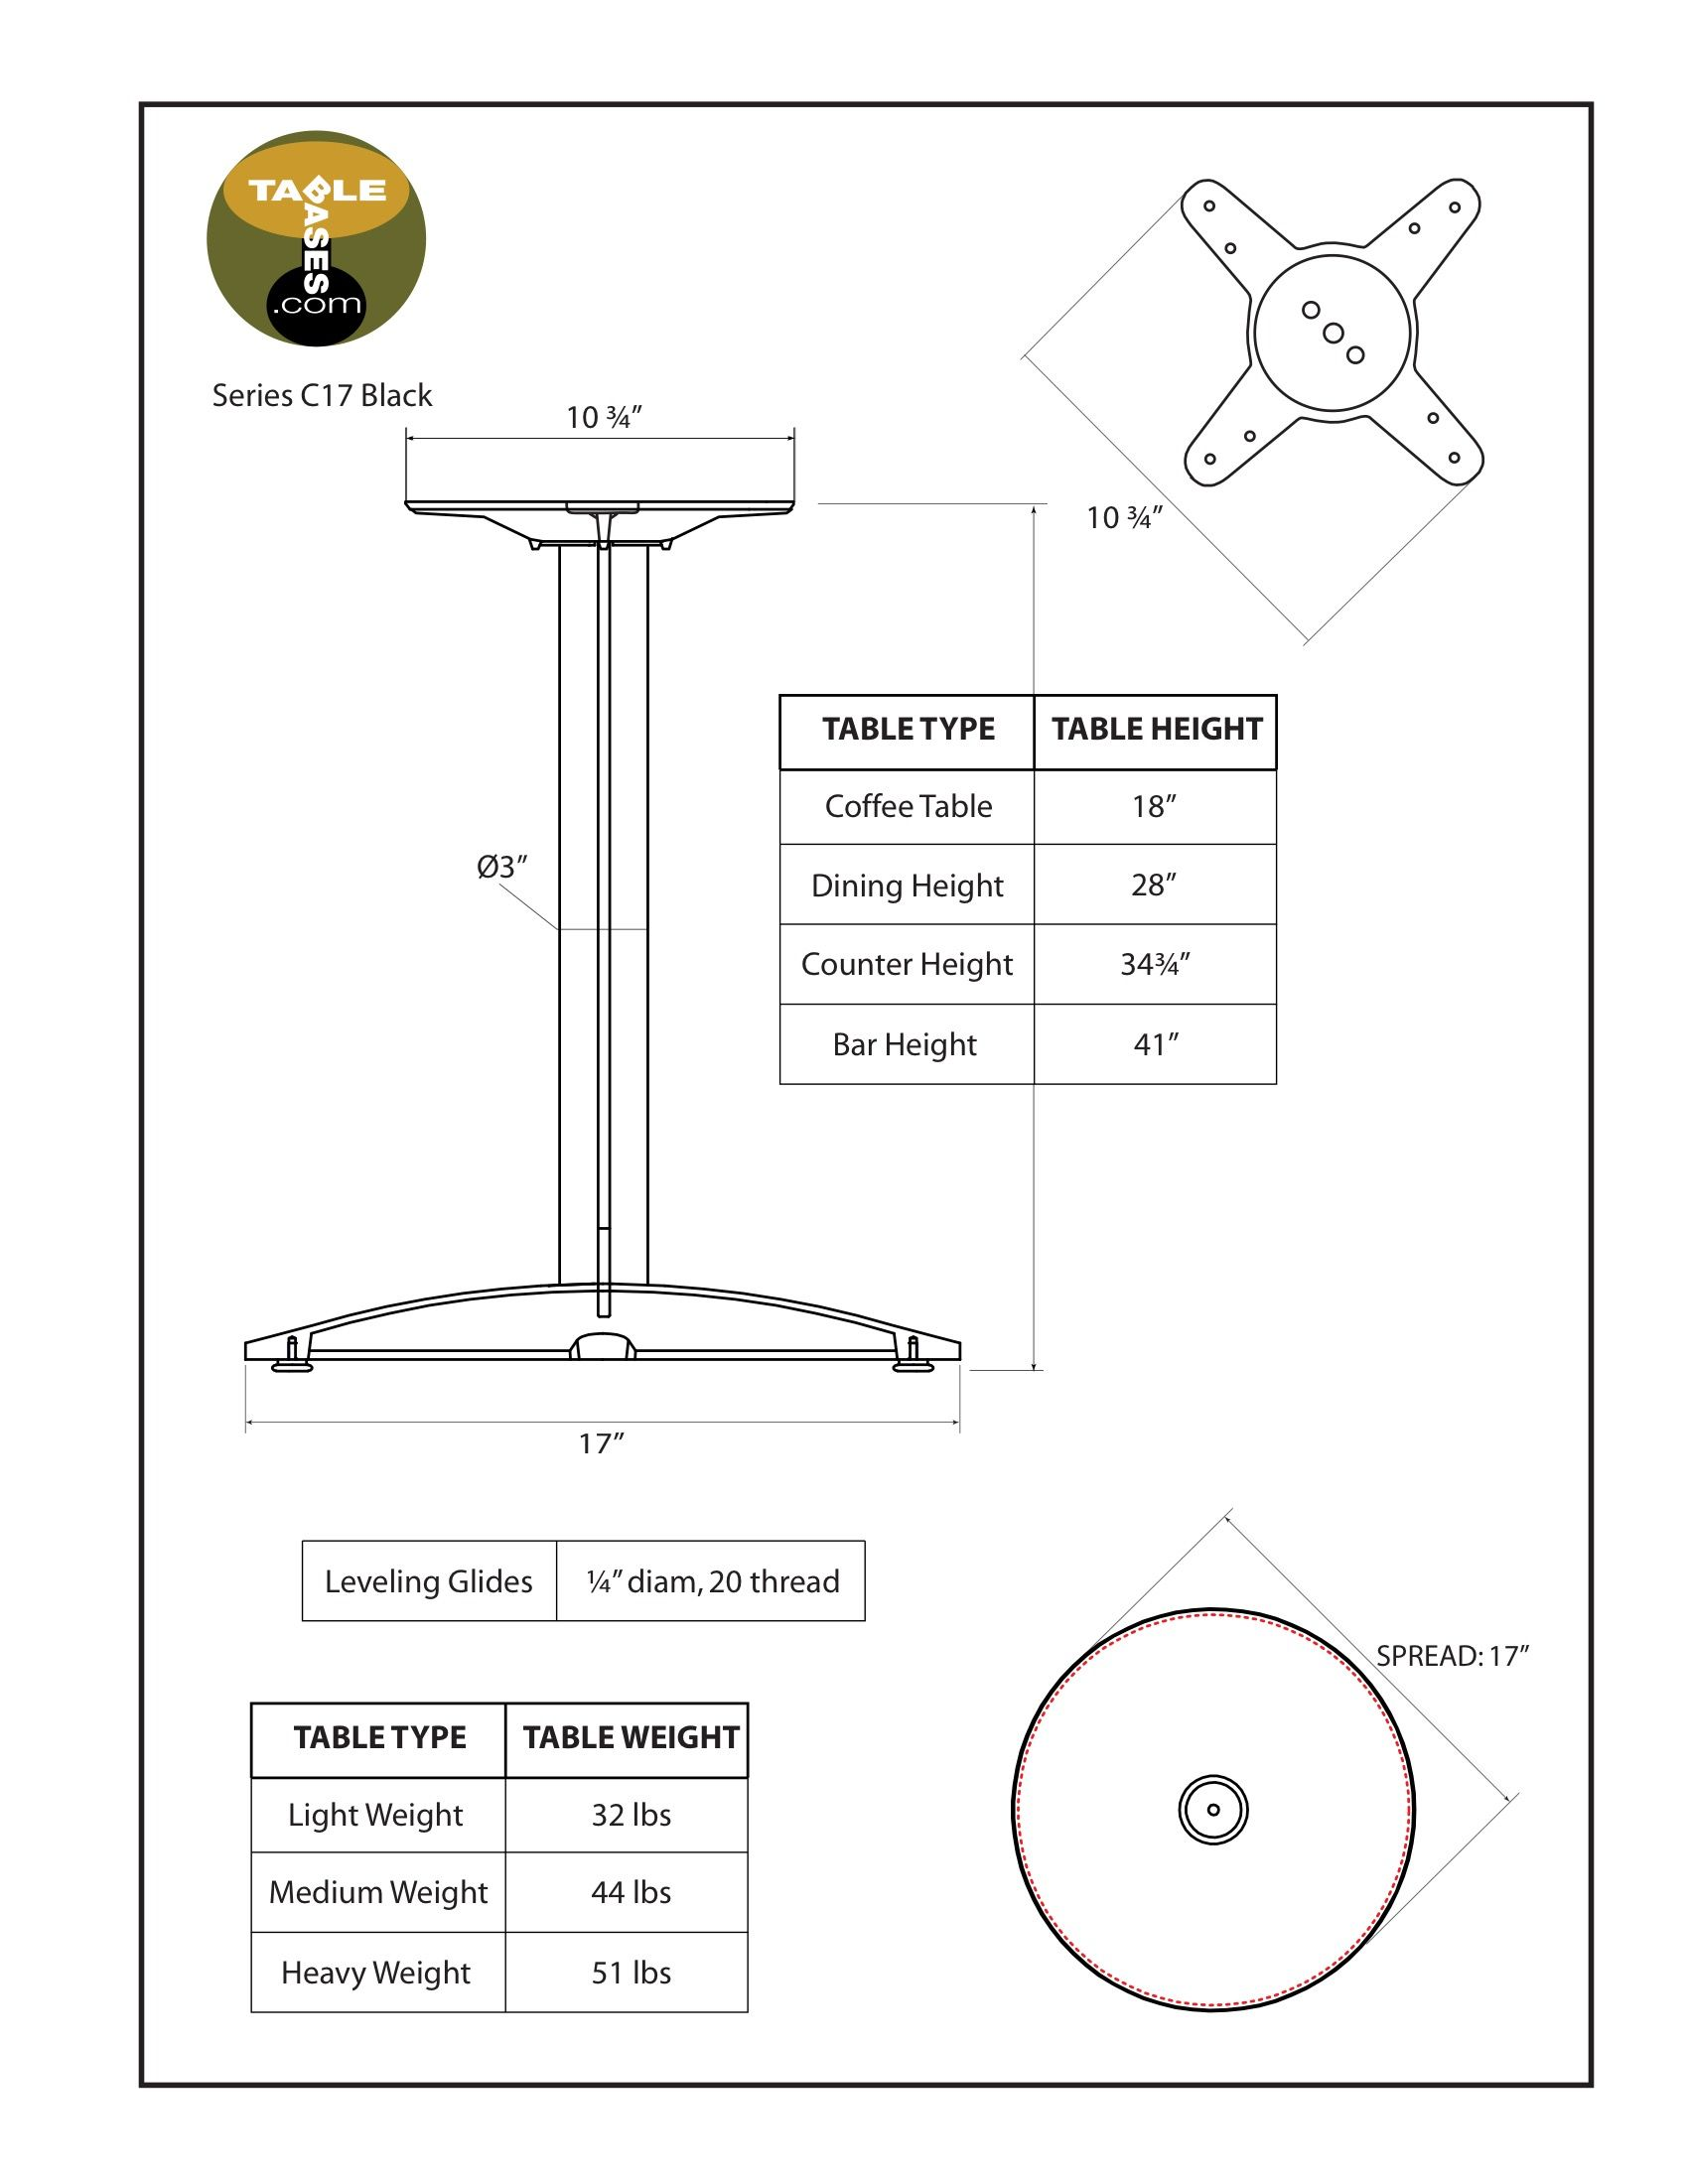 C17 Black Table Base - Specifications